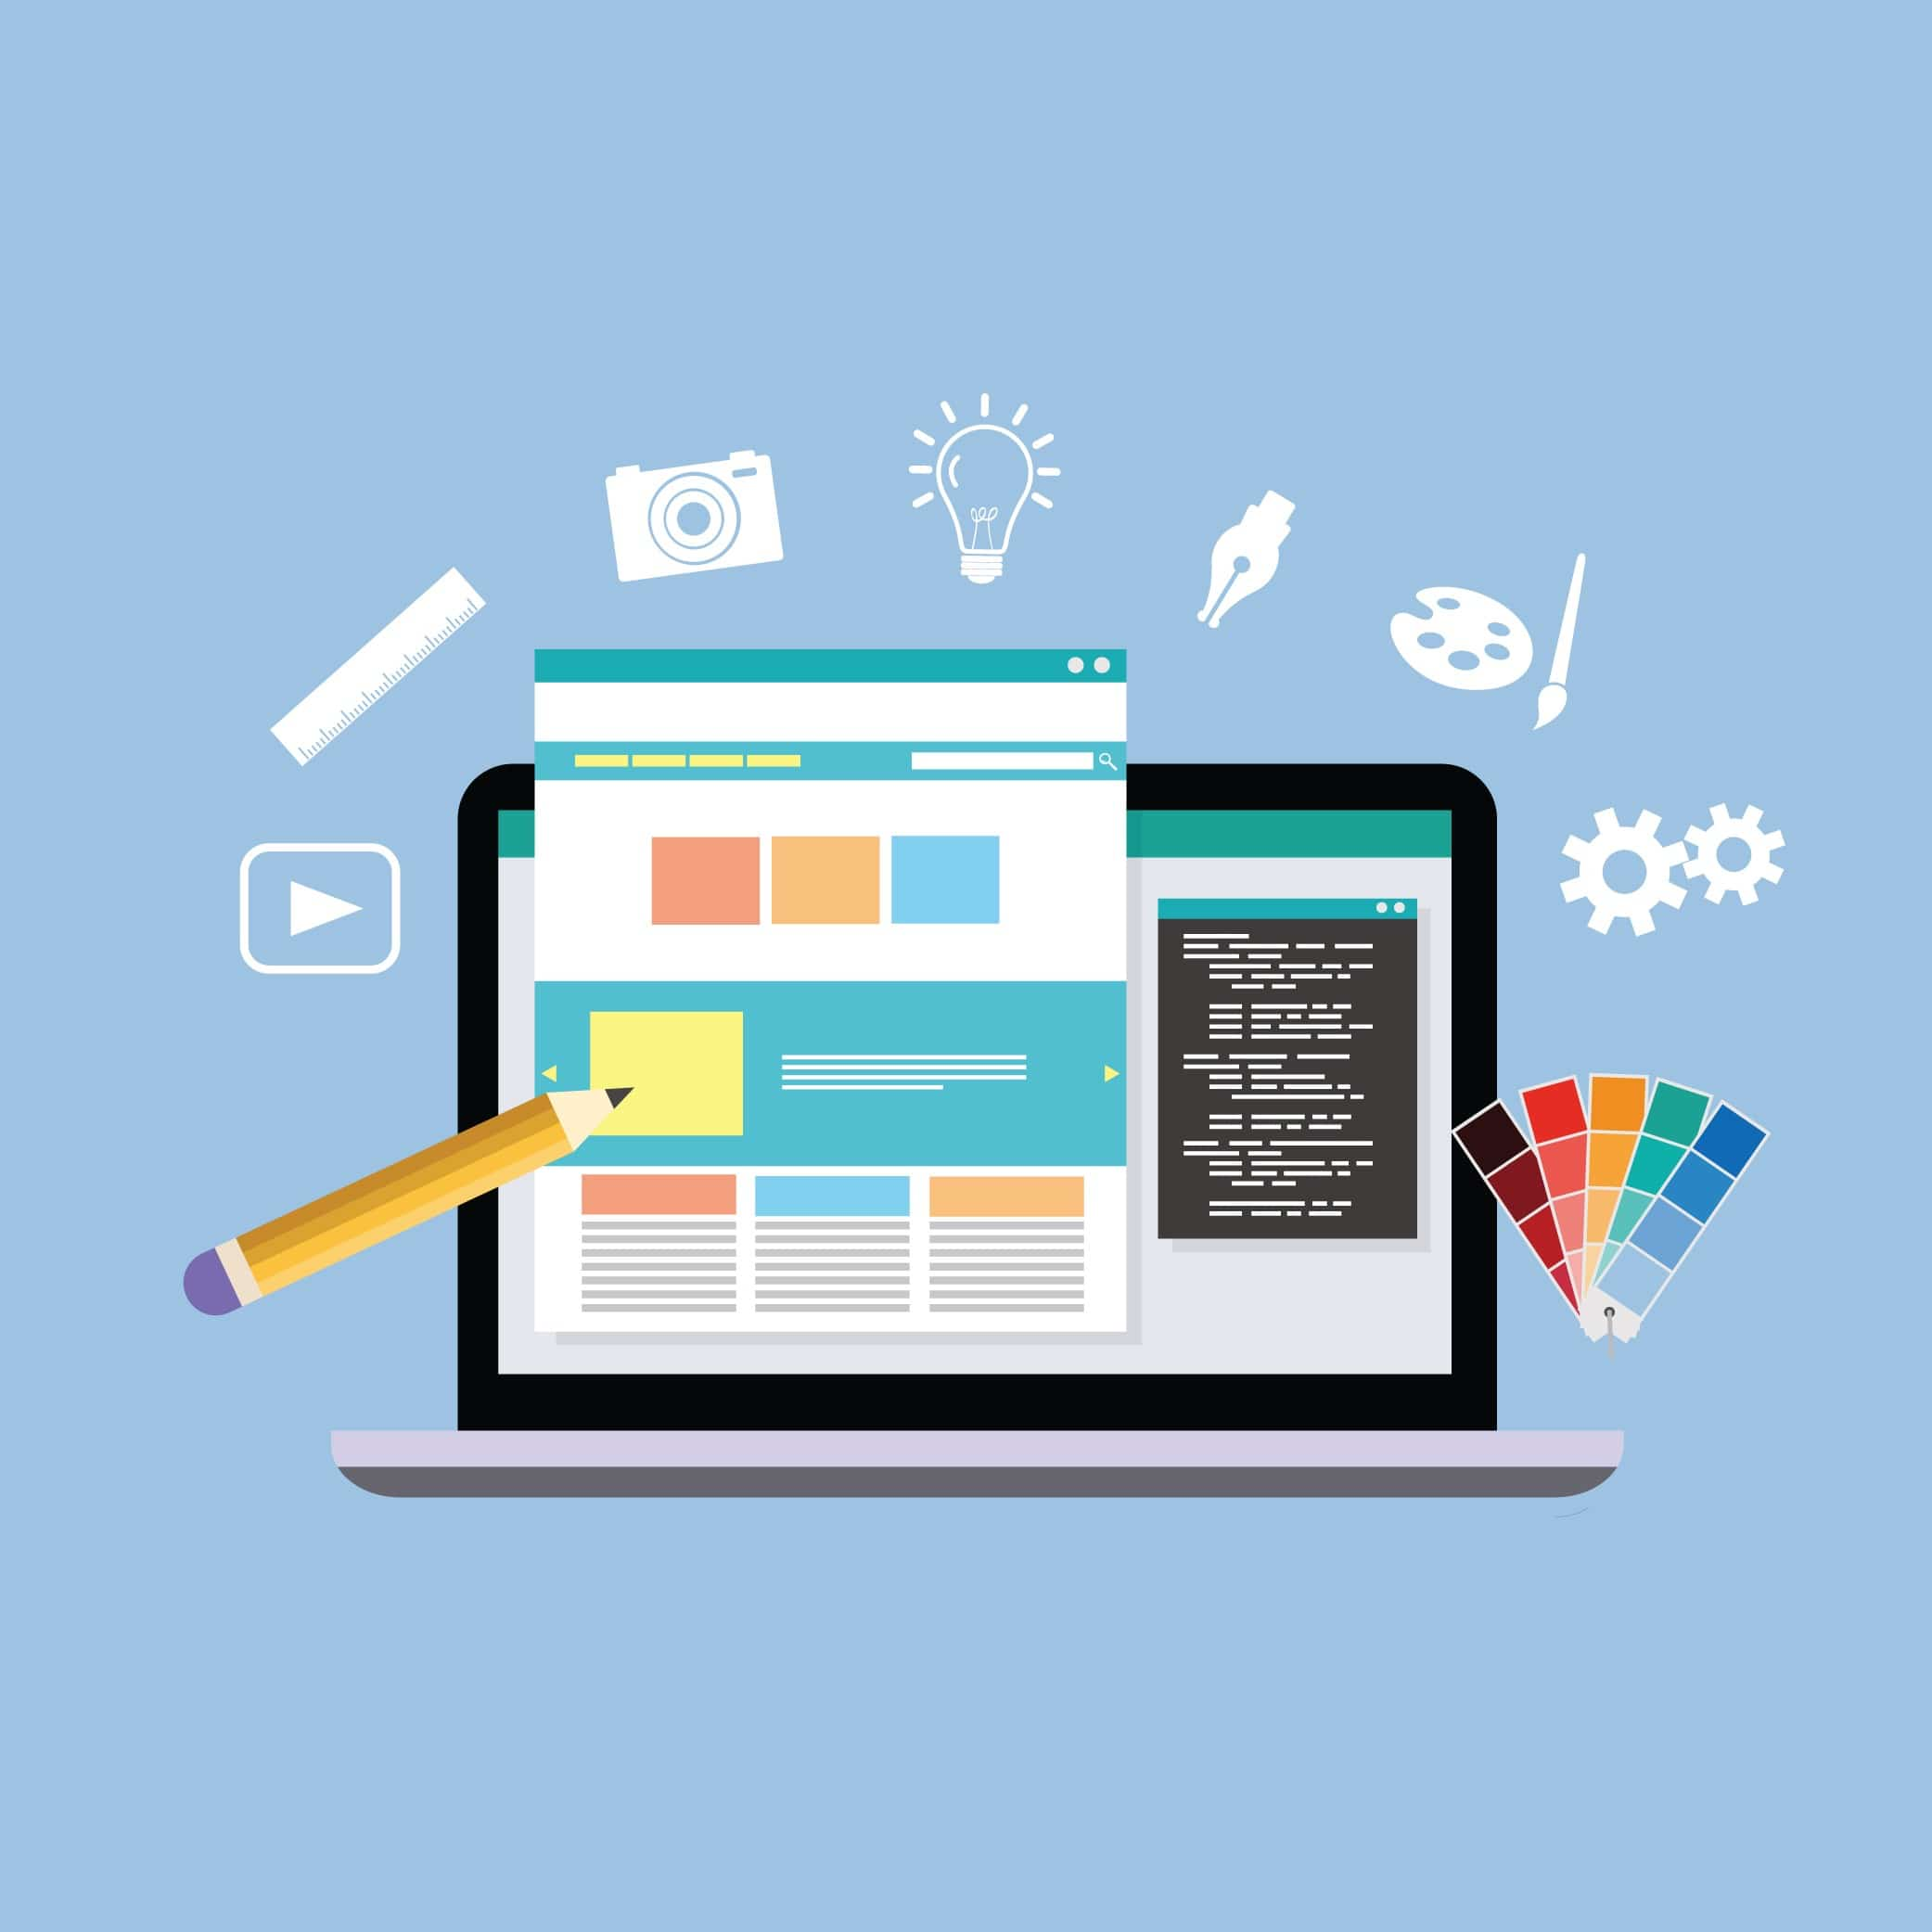 7 Tips to Choose the Right Website Design Company